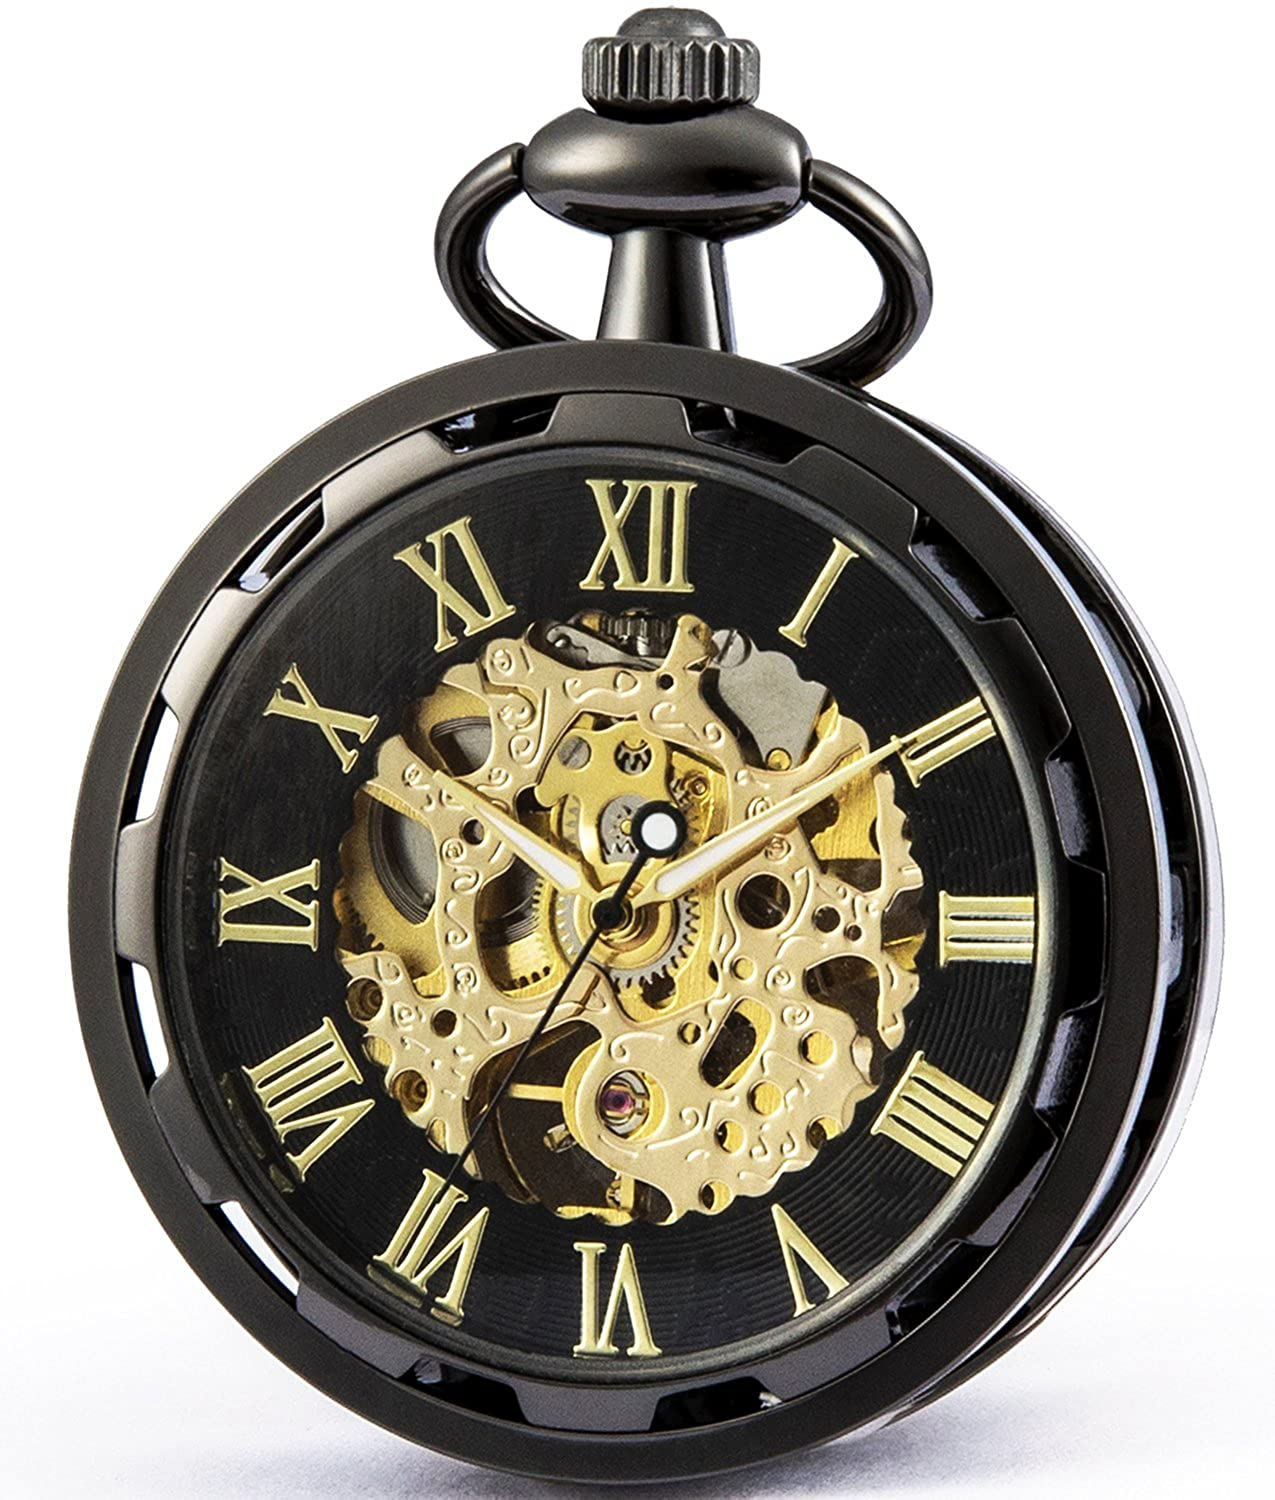 SEWOR Retro Single Face Carving Pocket Watch with Two Chains, Mechanical Hand Wind